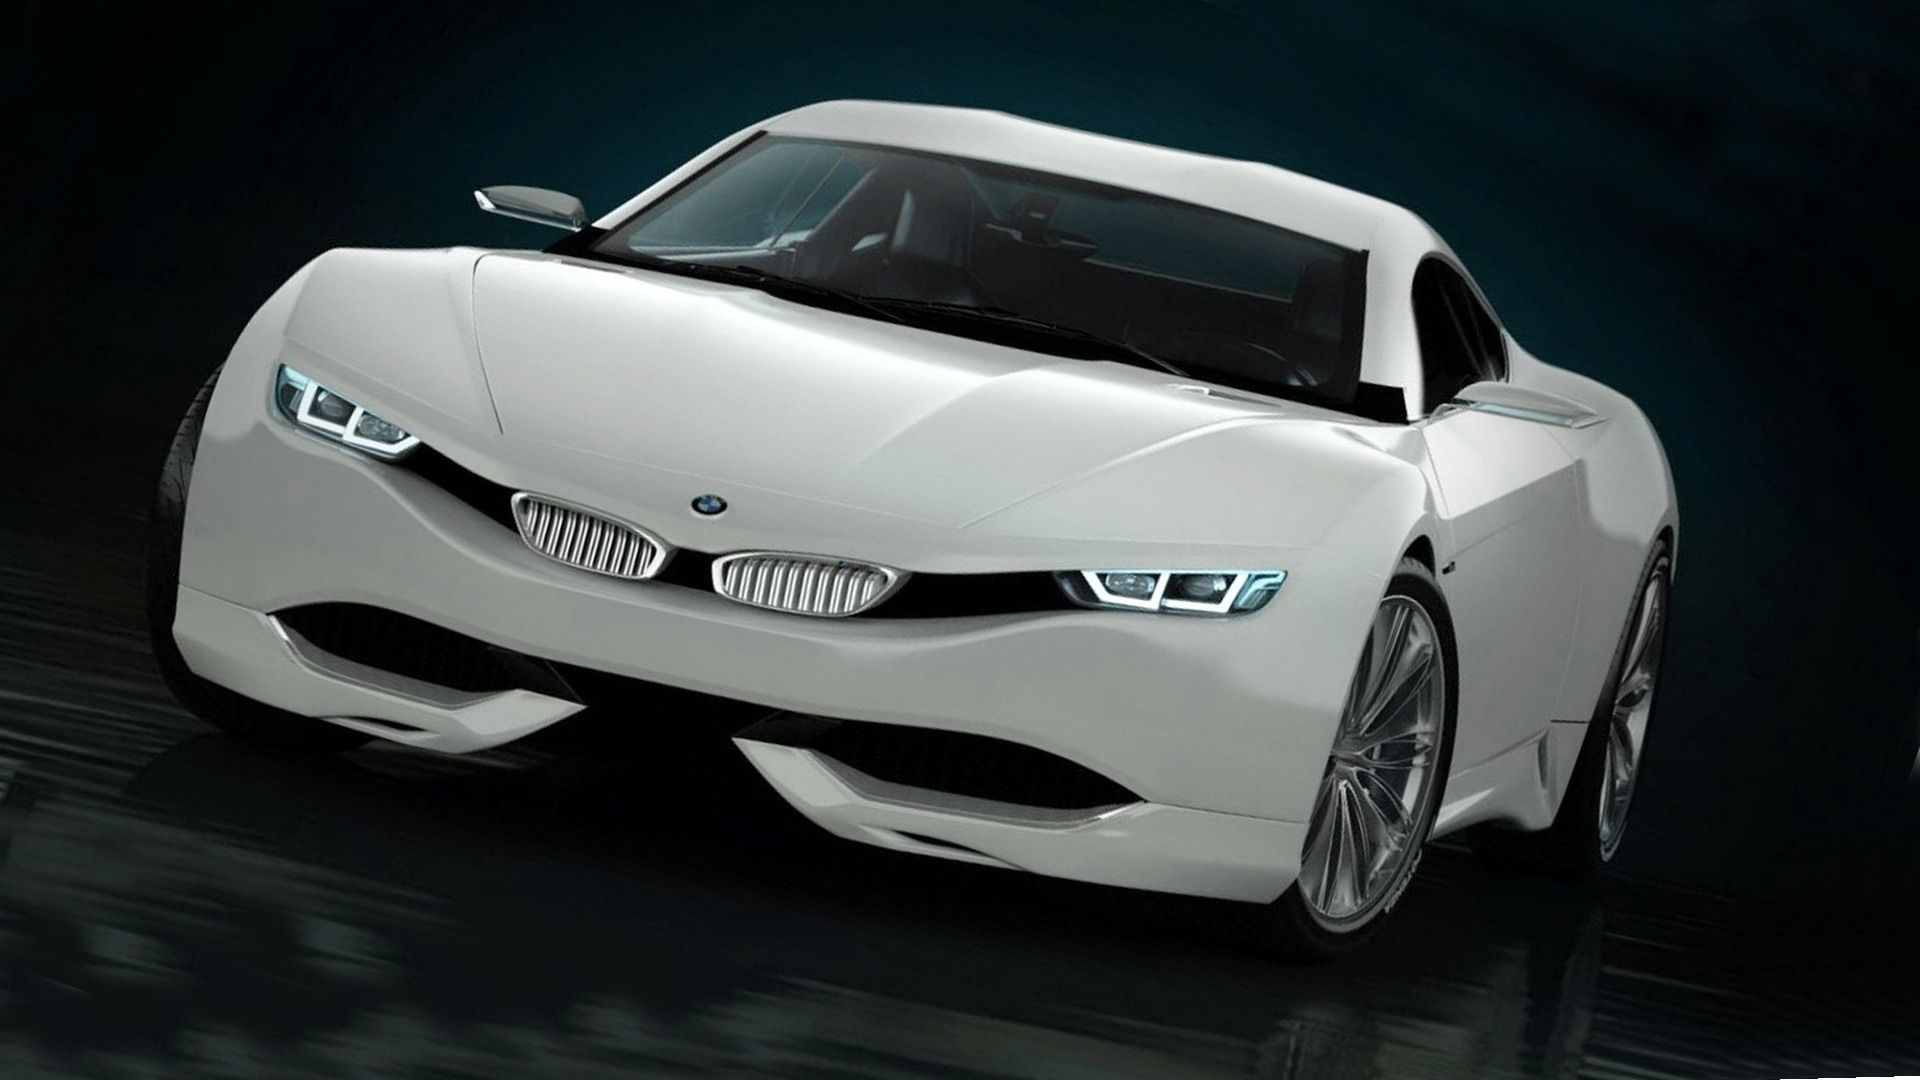 The Bmw M9 2020 Performance And New Engine Car Wallpaper Bmw